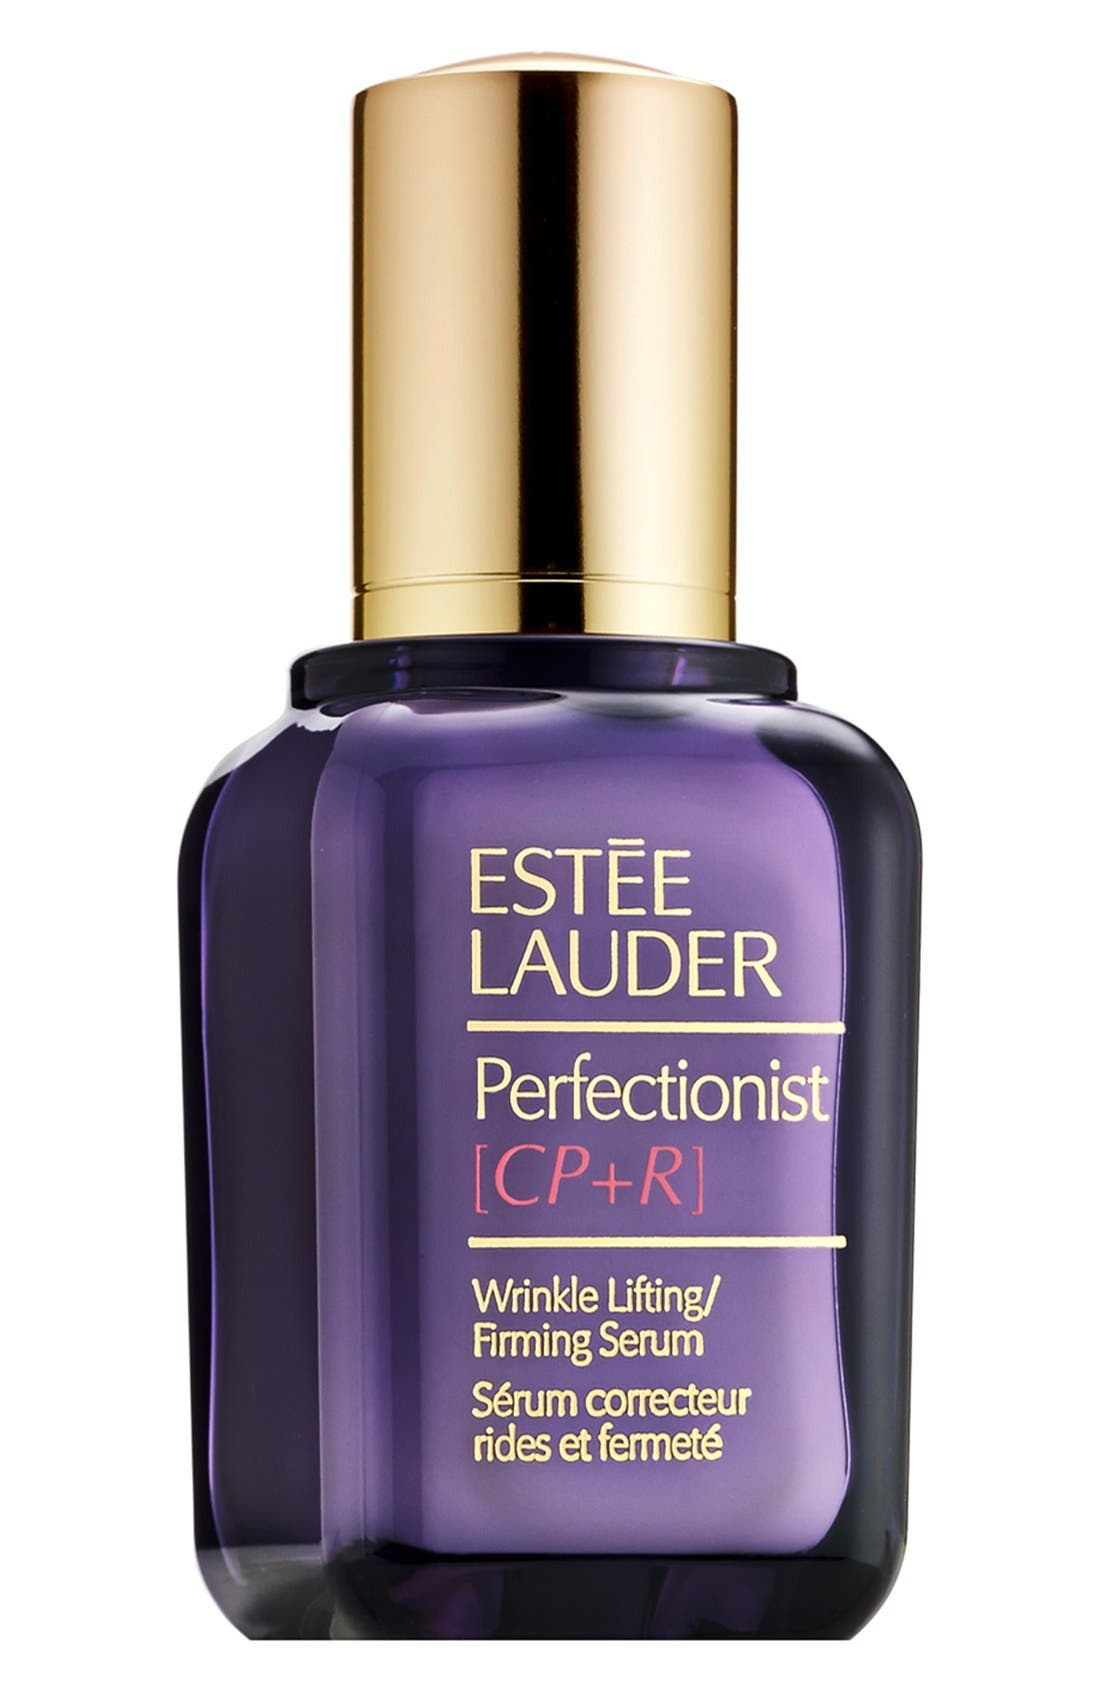 Estée Lauder Perfectionist [CP+R] Wrinkle Lifting/Firming Serum